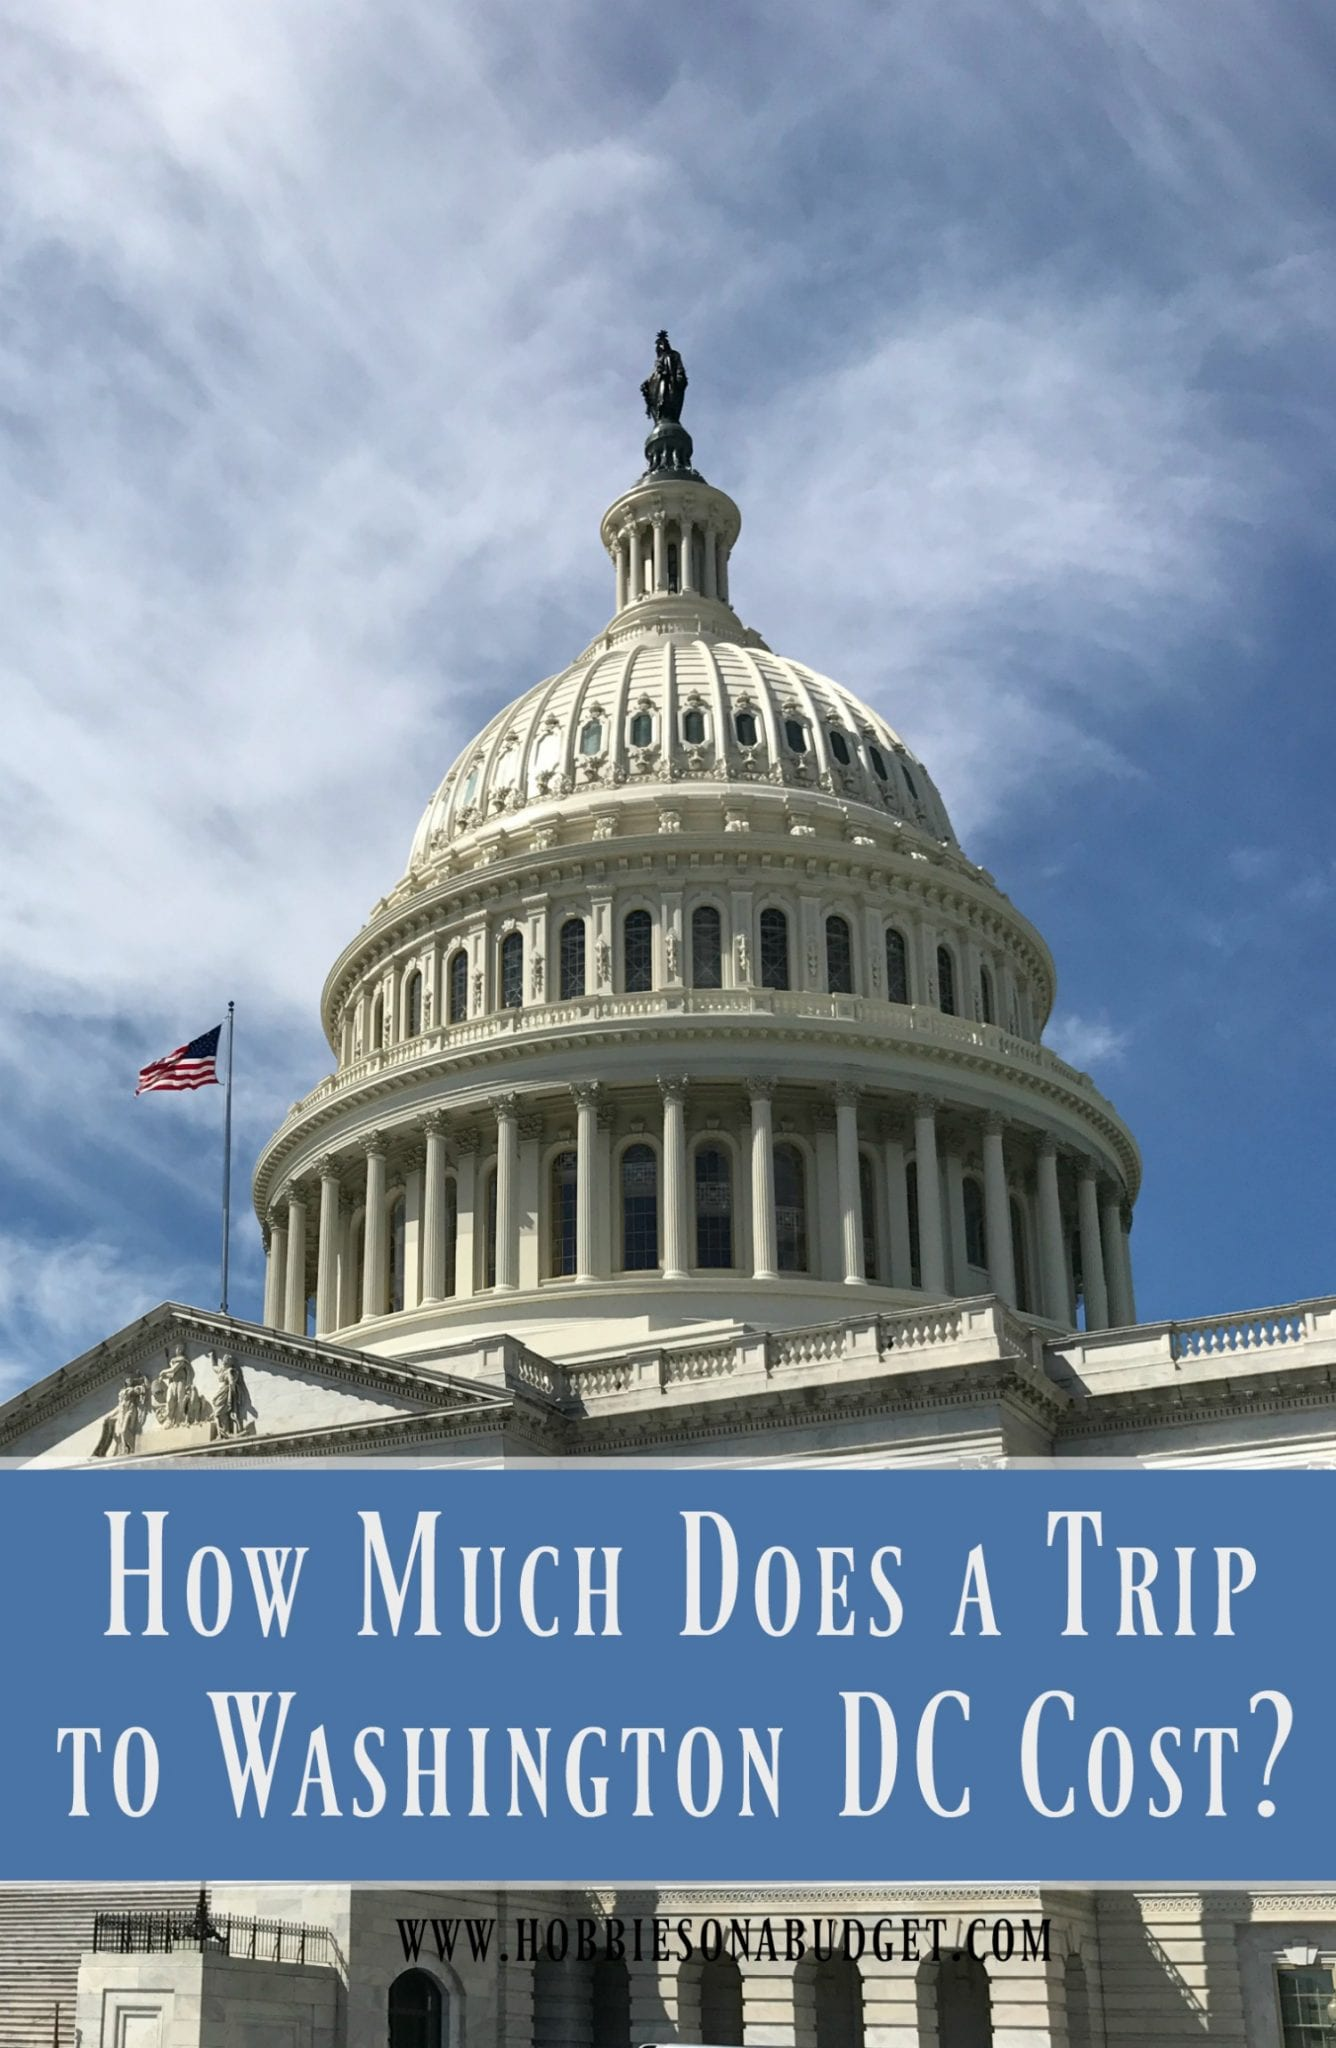 How much does a trip to Washington DC cost? When people talk about a trip to Washington D.C., the first thing that typically gets discussed is the fact that most of the museums are FREE. But there are still costs and fees involved in your trip!  Here are some tips to help plan your vacation to Washington DC!